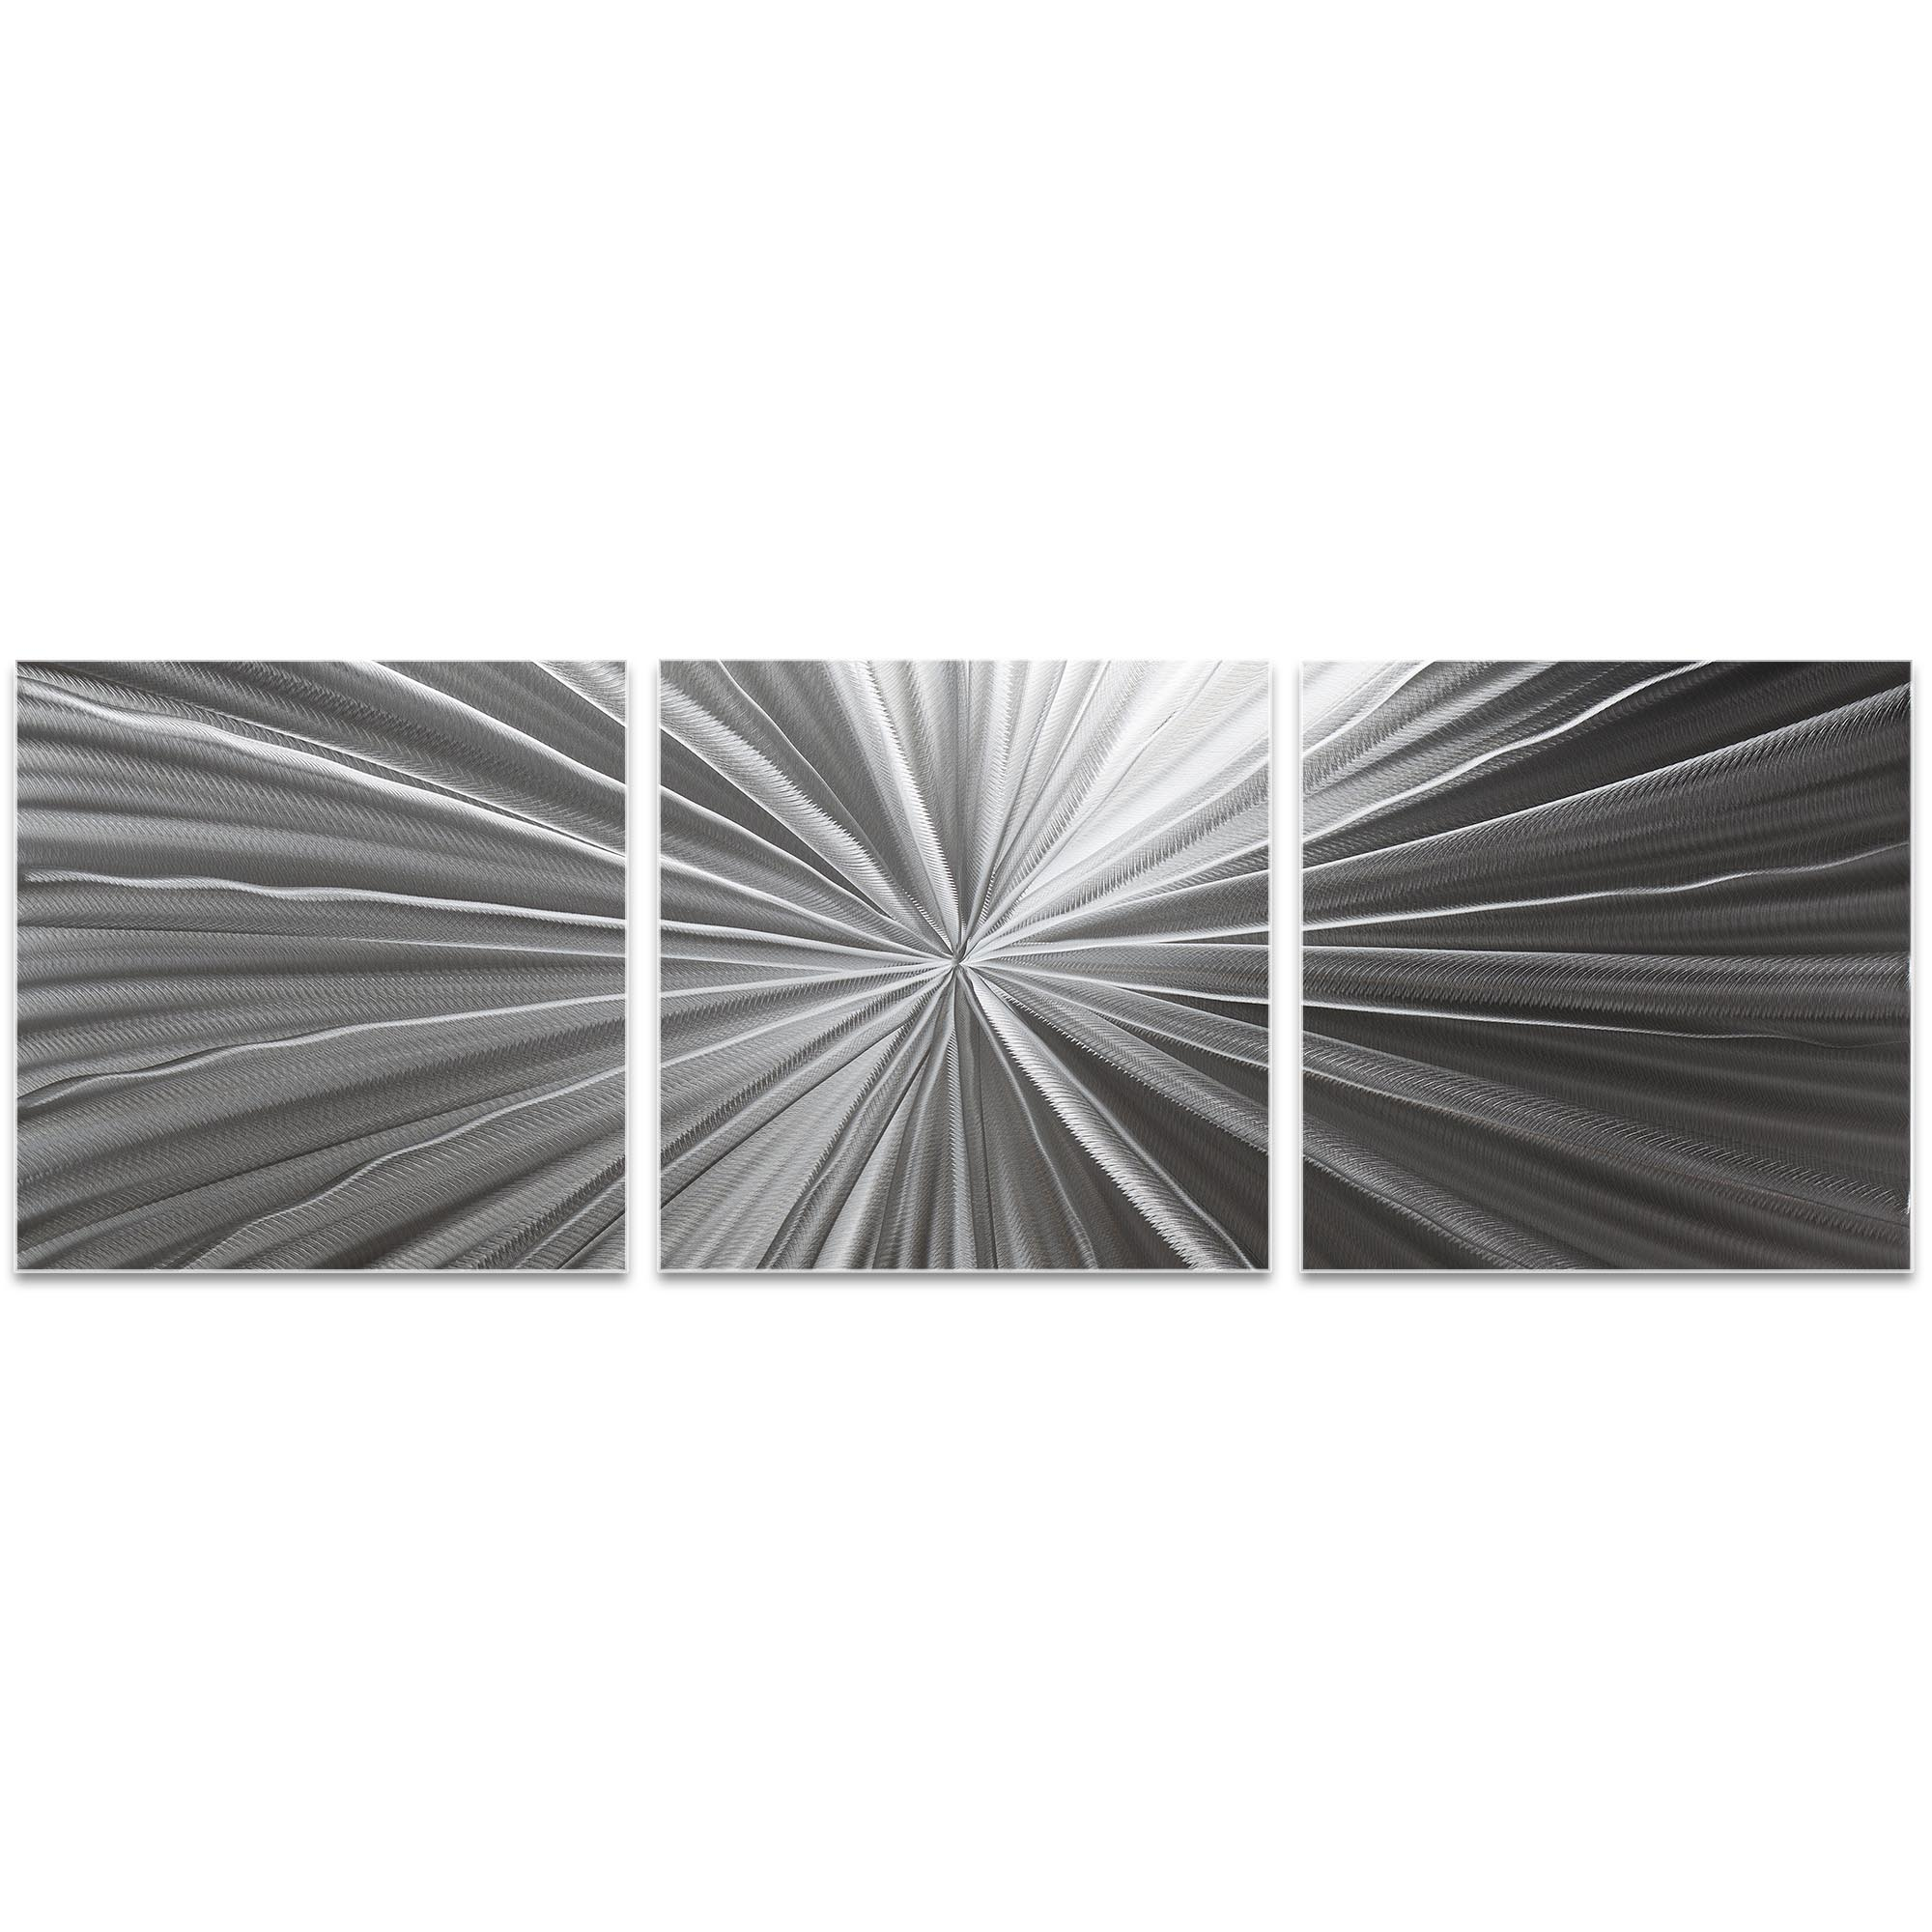 Tantalum Triptych 38x12in. Metal or Acrylic Contemporary Decor - Image 2